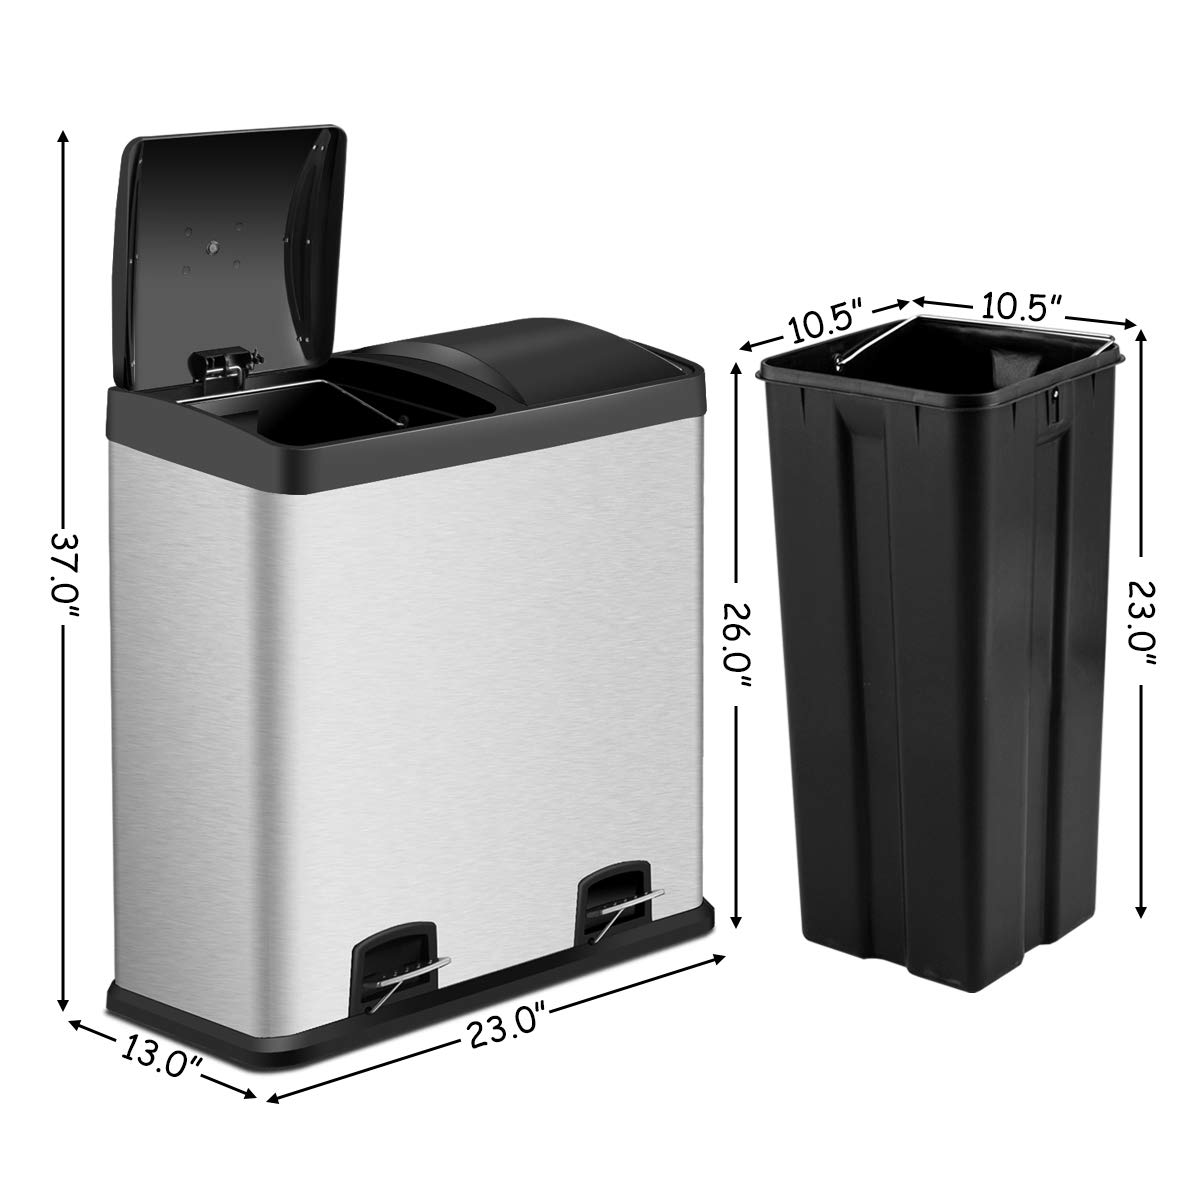 Amazon.com: Costzon Double Compartment Classified Step Trash ...